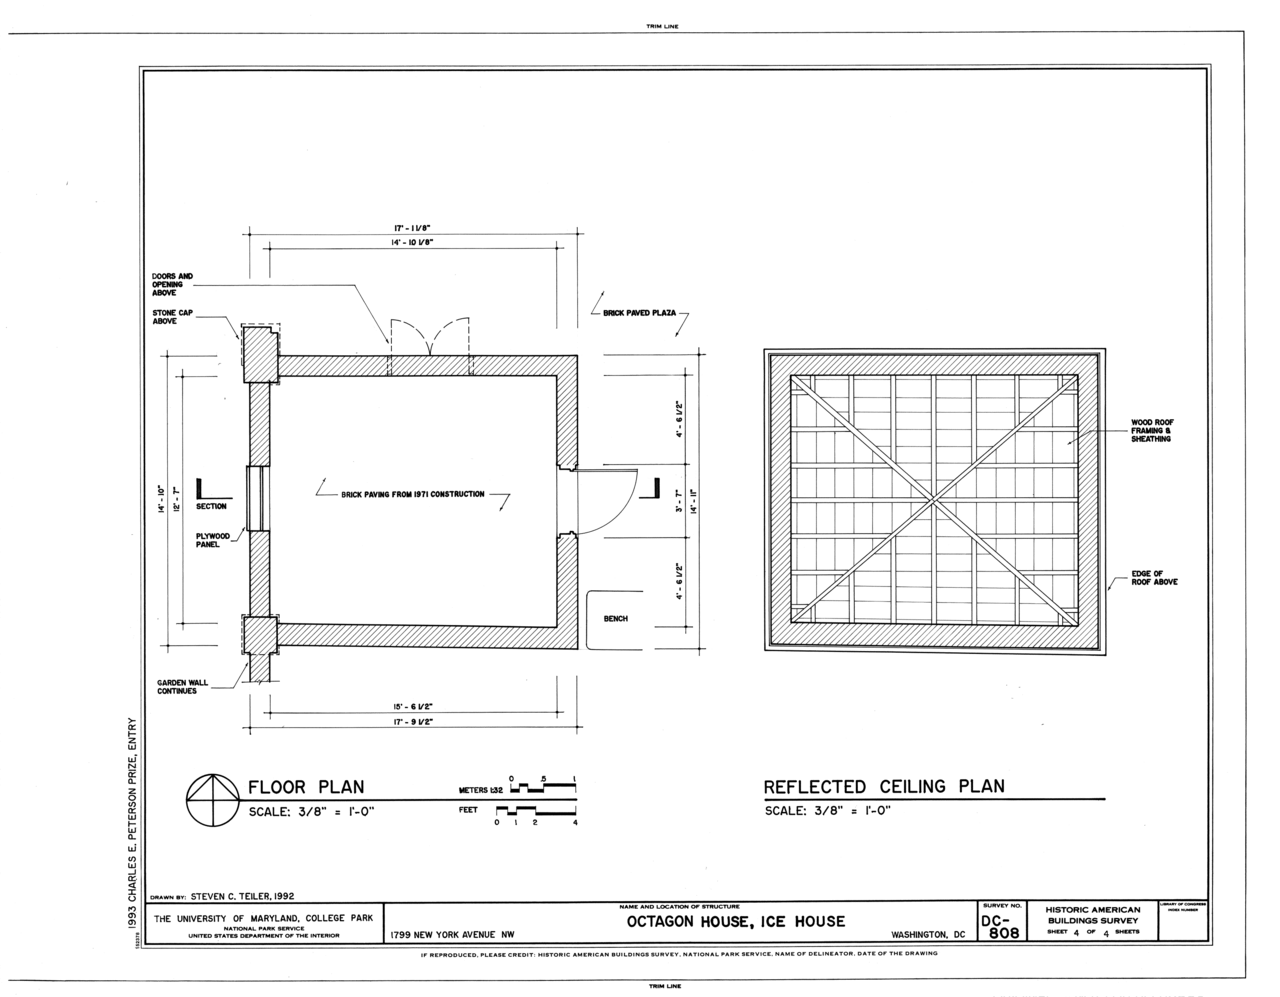 File Floor Plan And Reflection Ceiling Plan Octagon